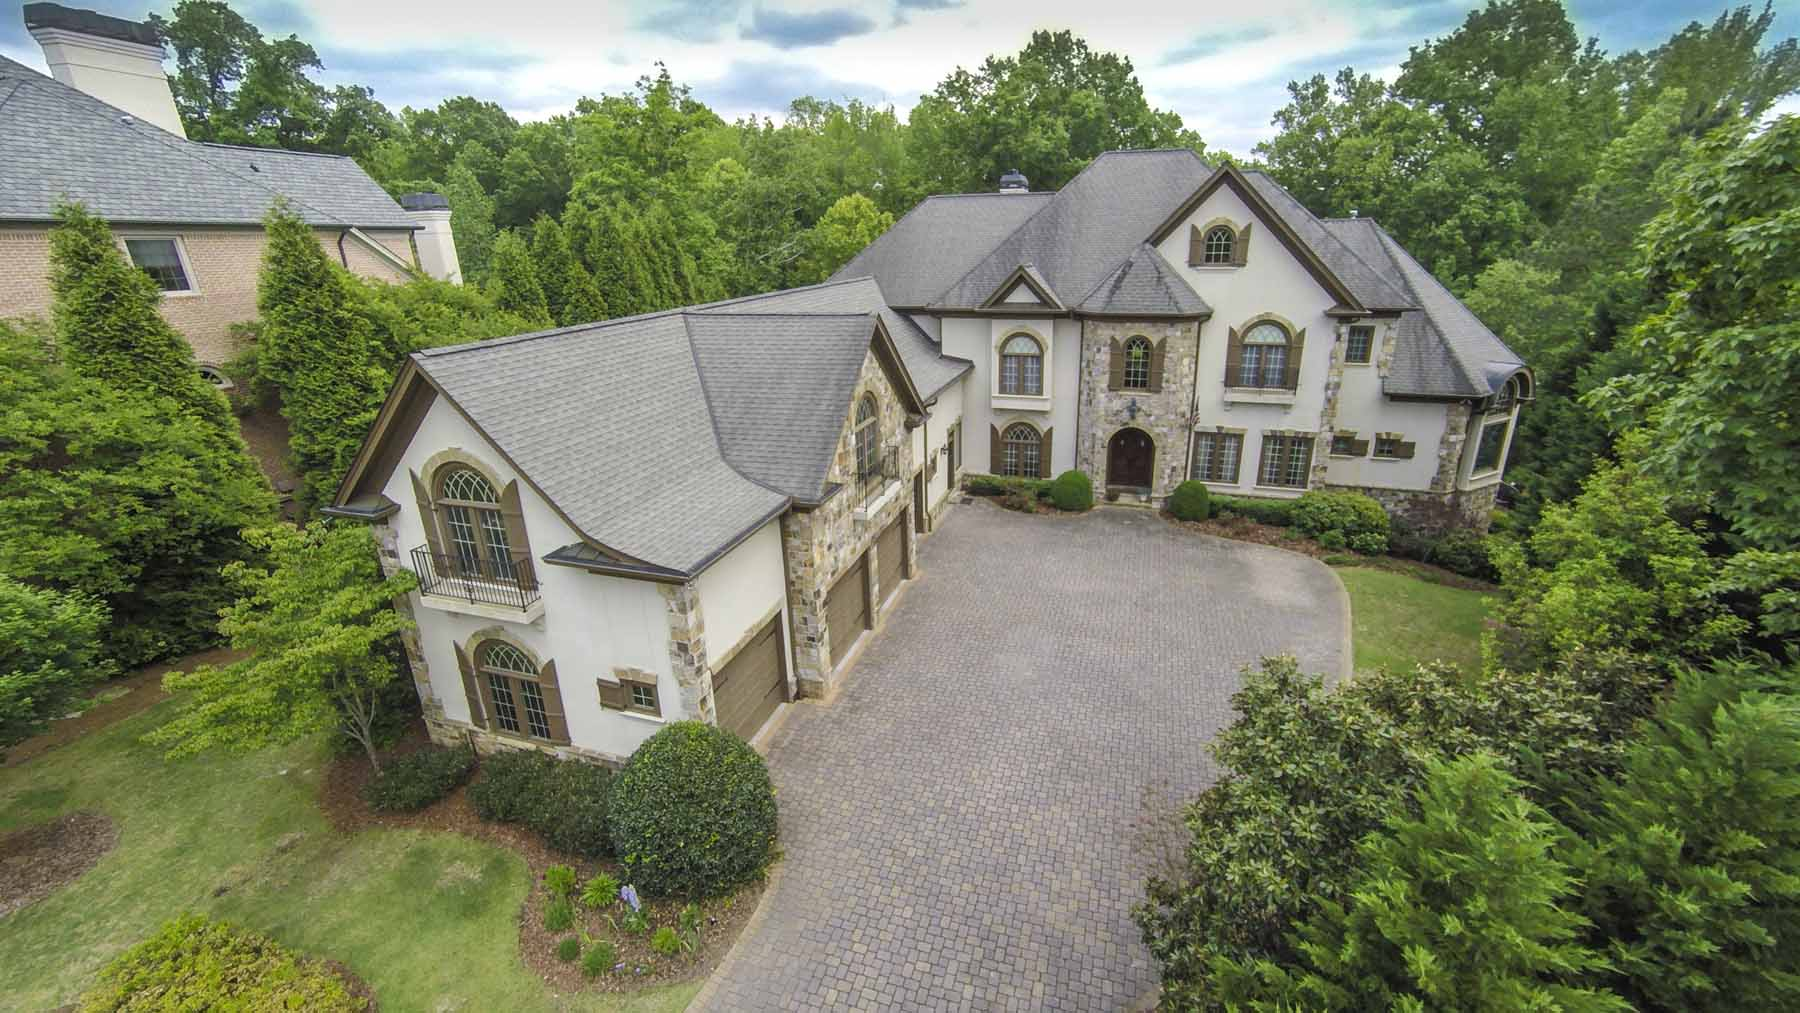 Частный односемейный дом для того Продажа на Stunning Home Meets Modern Updates on the Sparkling Chattahoochee River 500 Covington Cove Alpharetta, Джорджия 30022 Соединенные Штаты